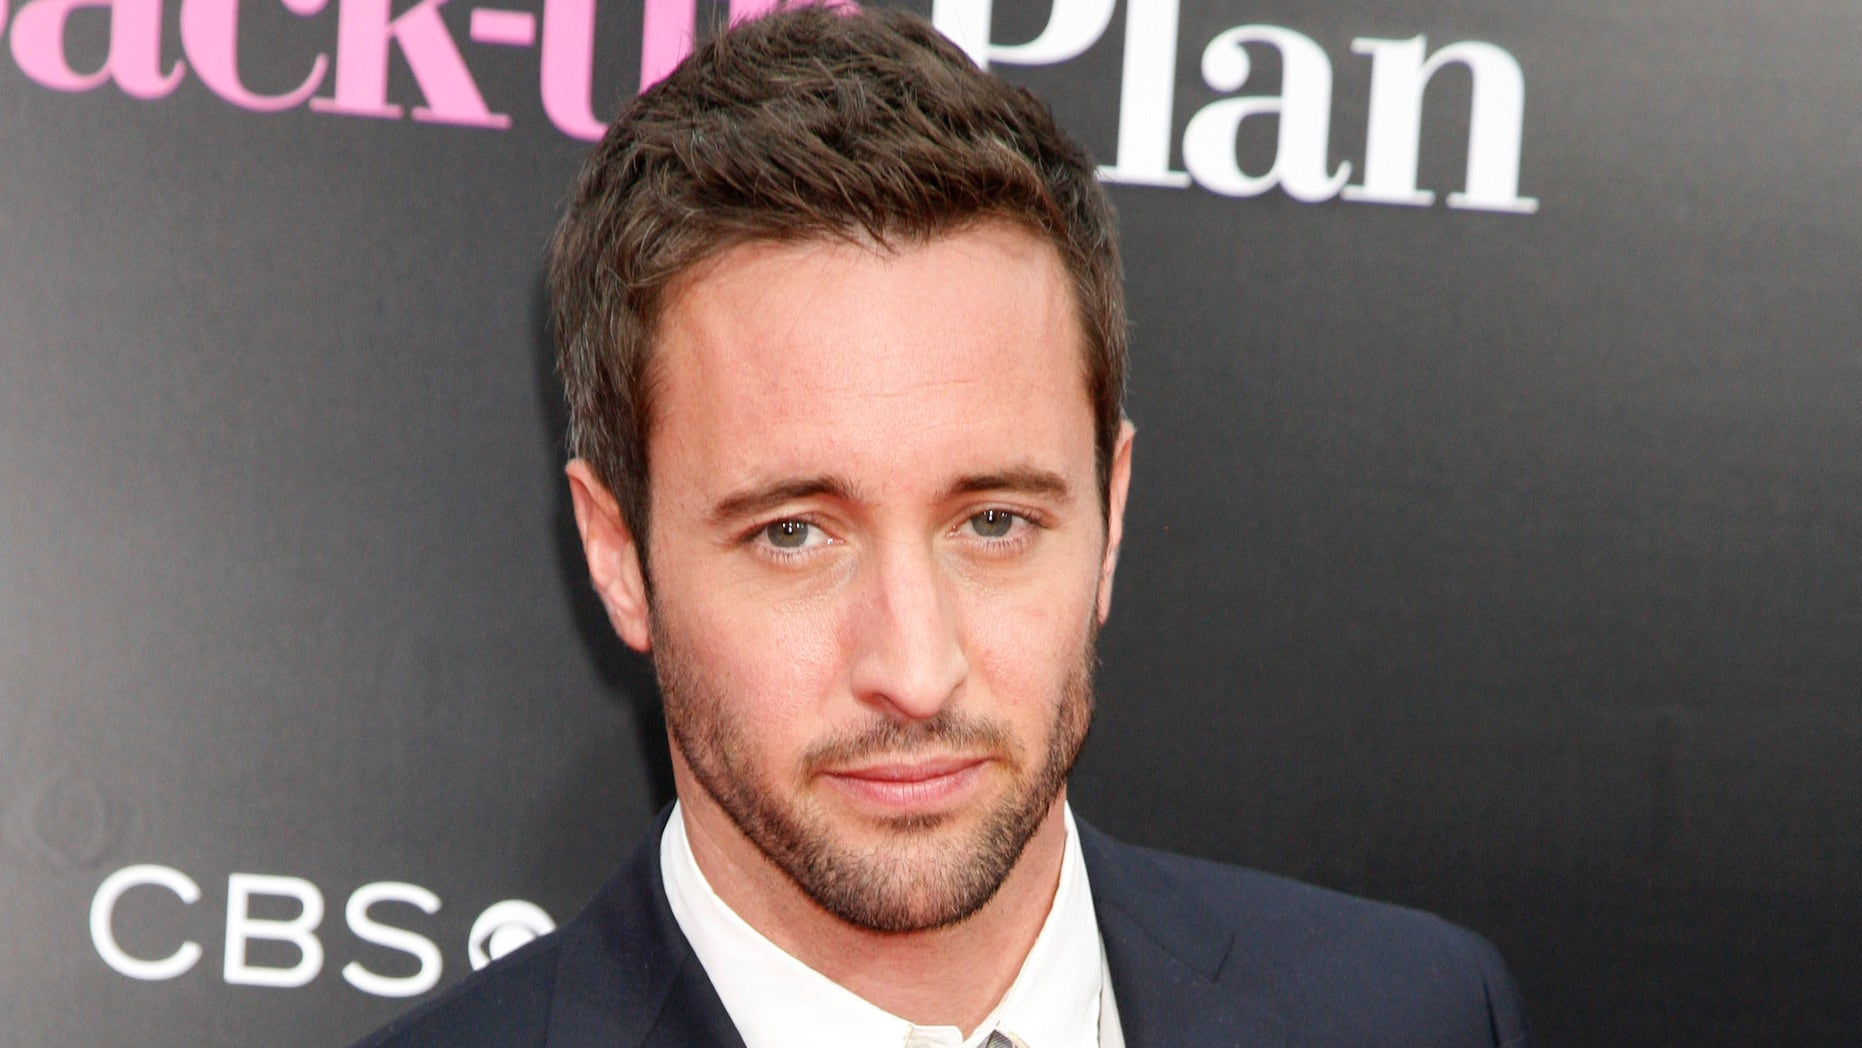 """April, 21, 2010. Alex O'Loughlin arrives for the premiere of the film  """"The Back-up Plan"""" in Los Angeles, California."""